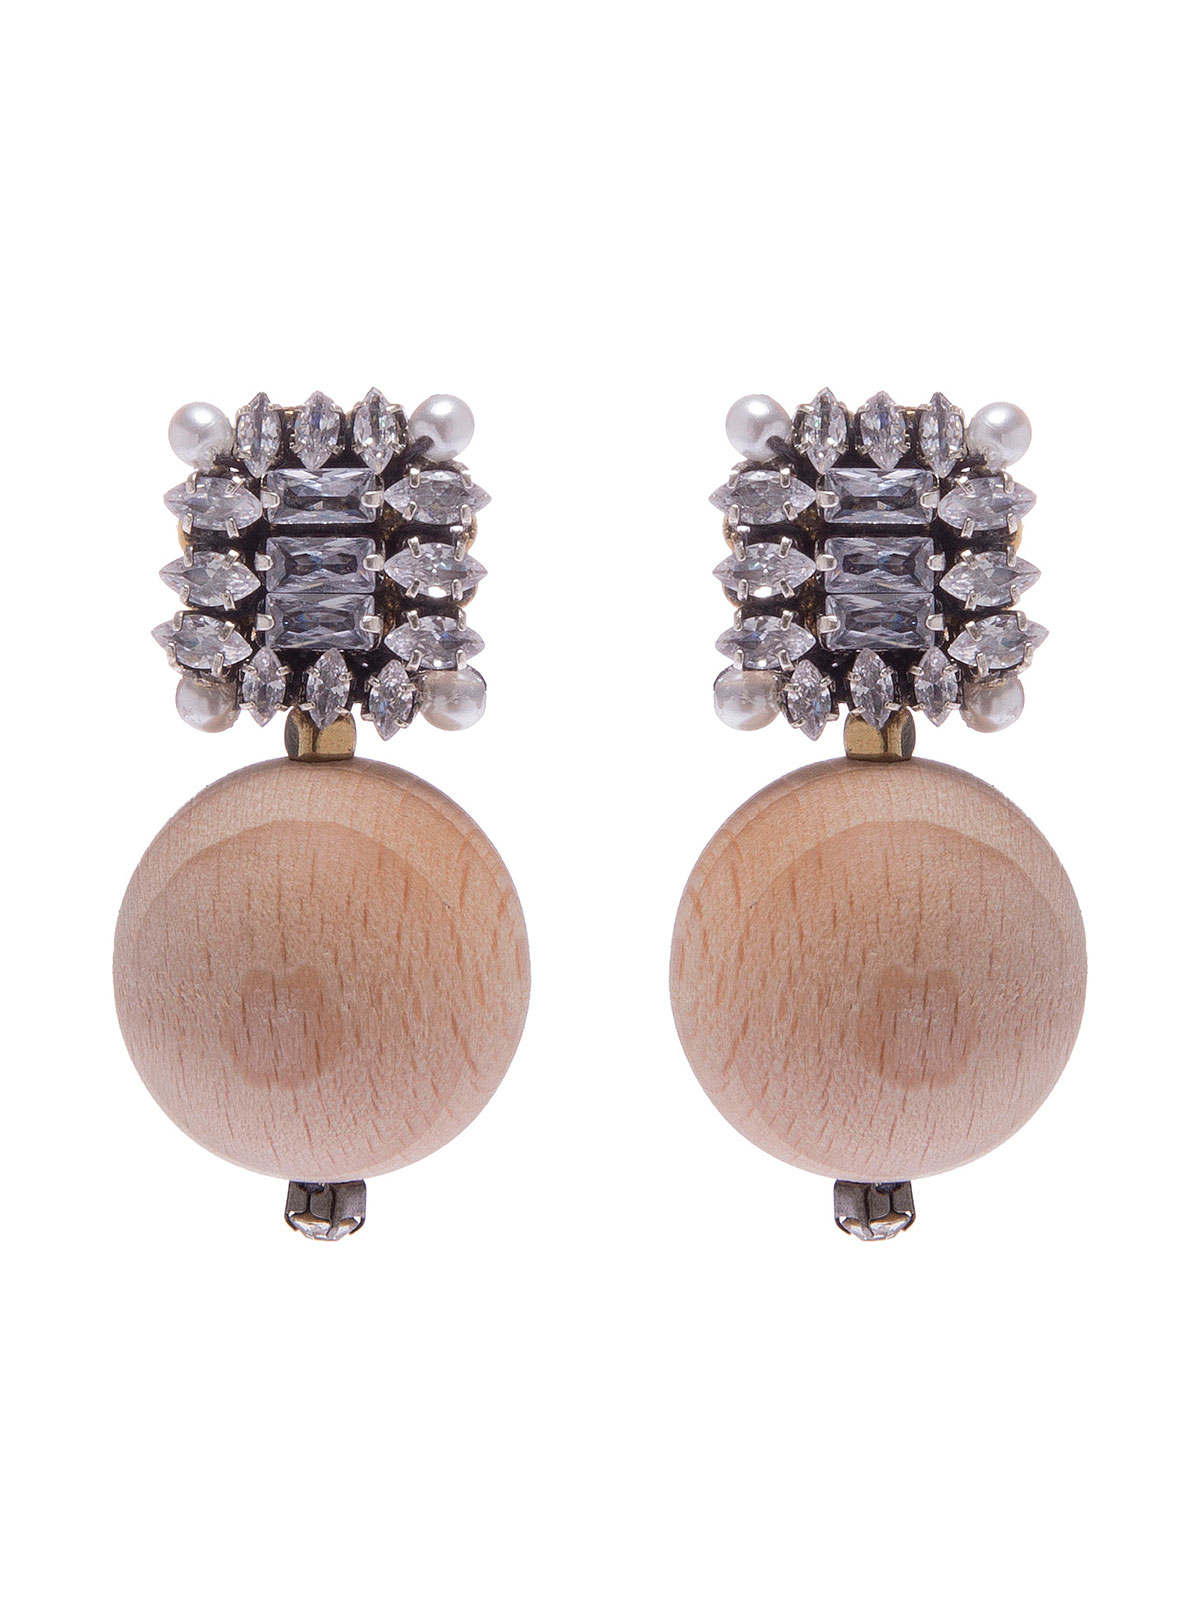 Crystal earrings with wood spheres